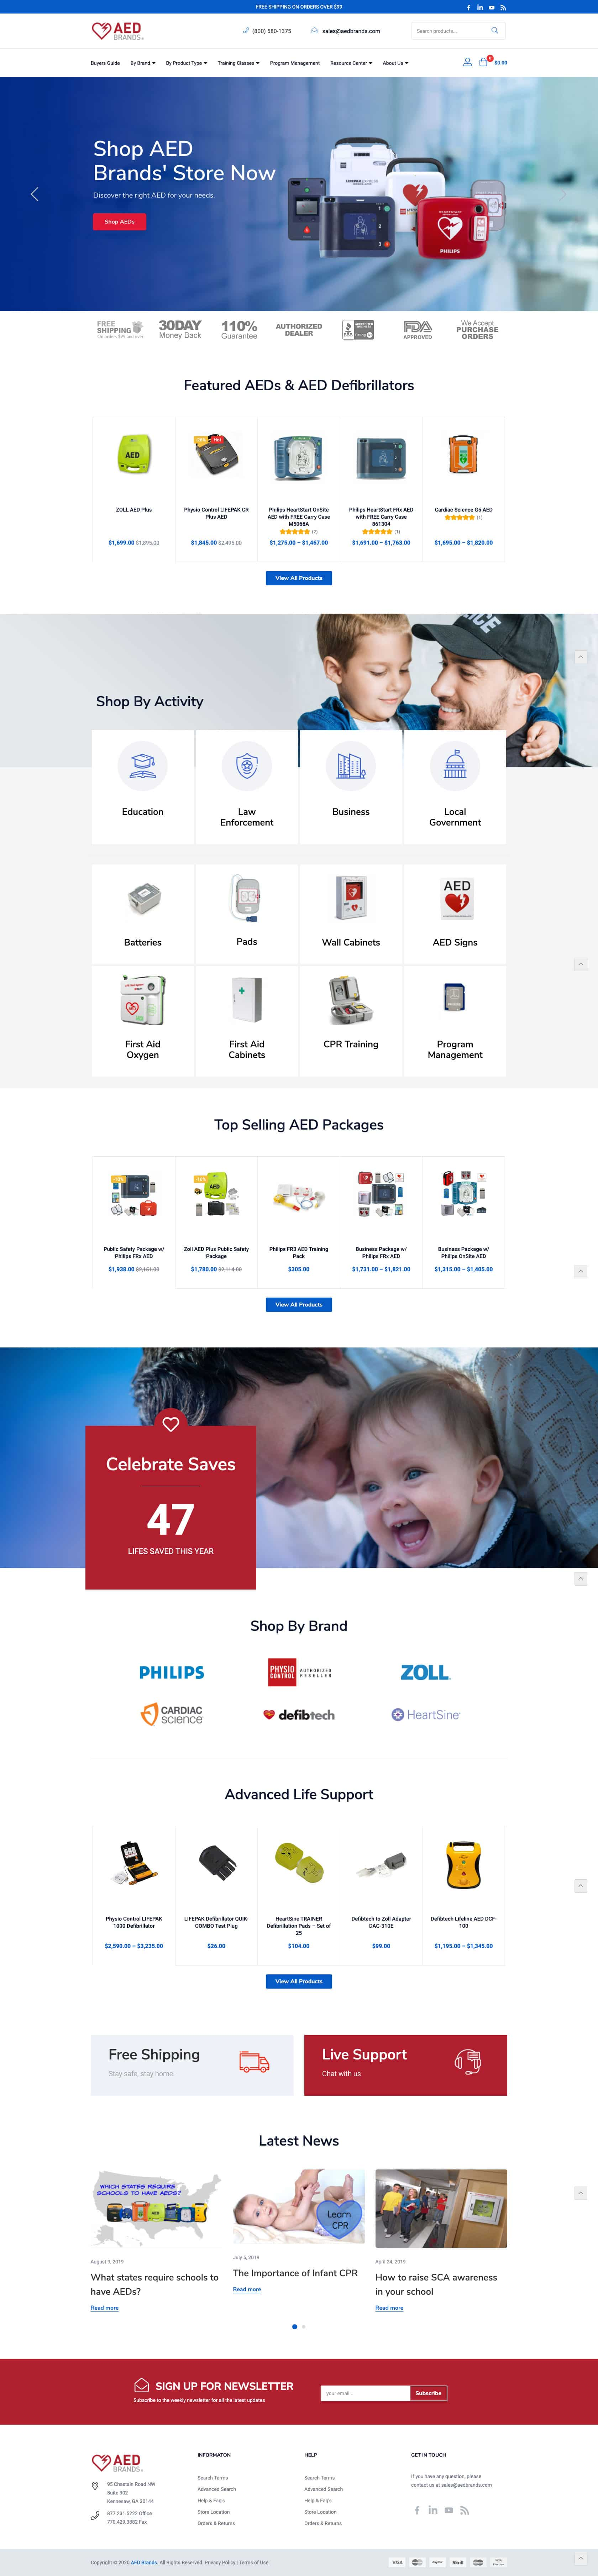 AED Home Page Design Example